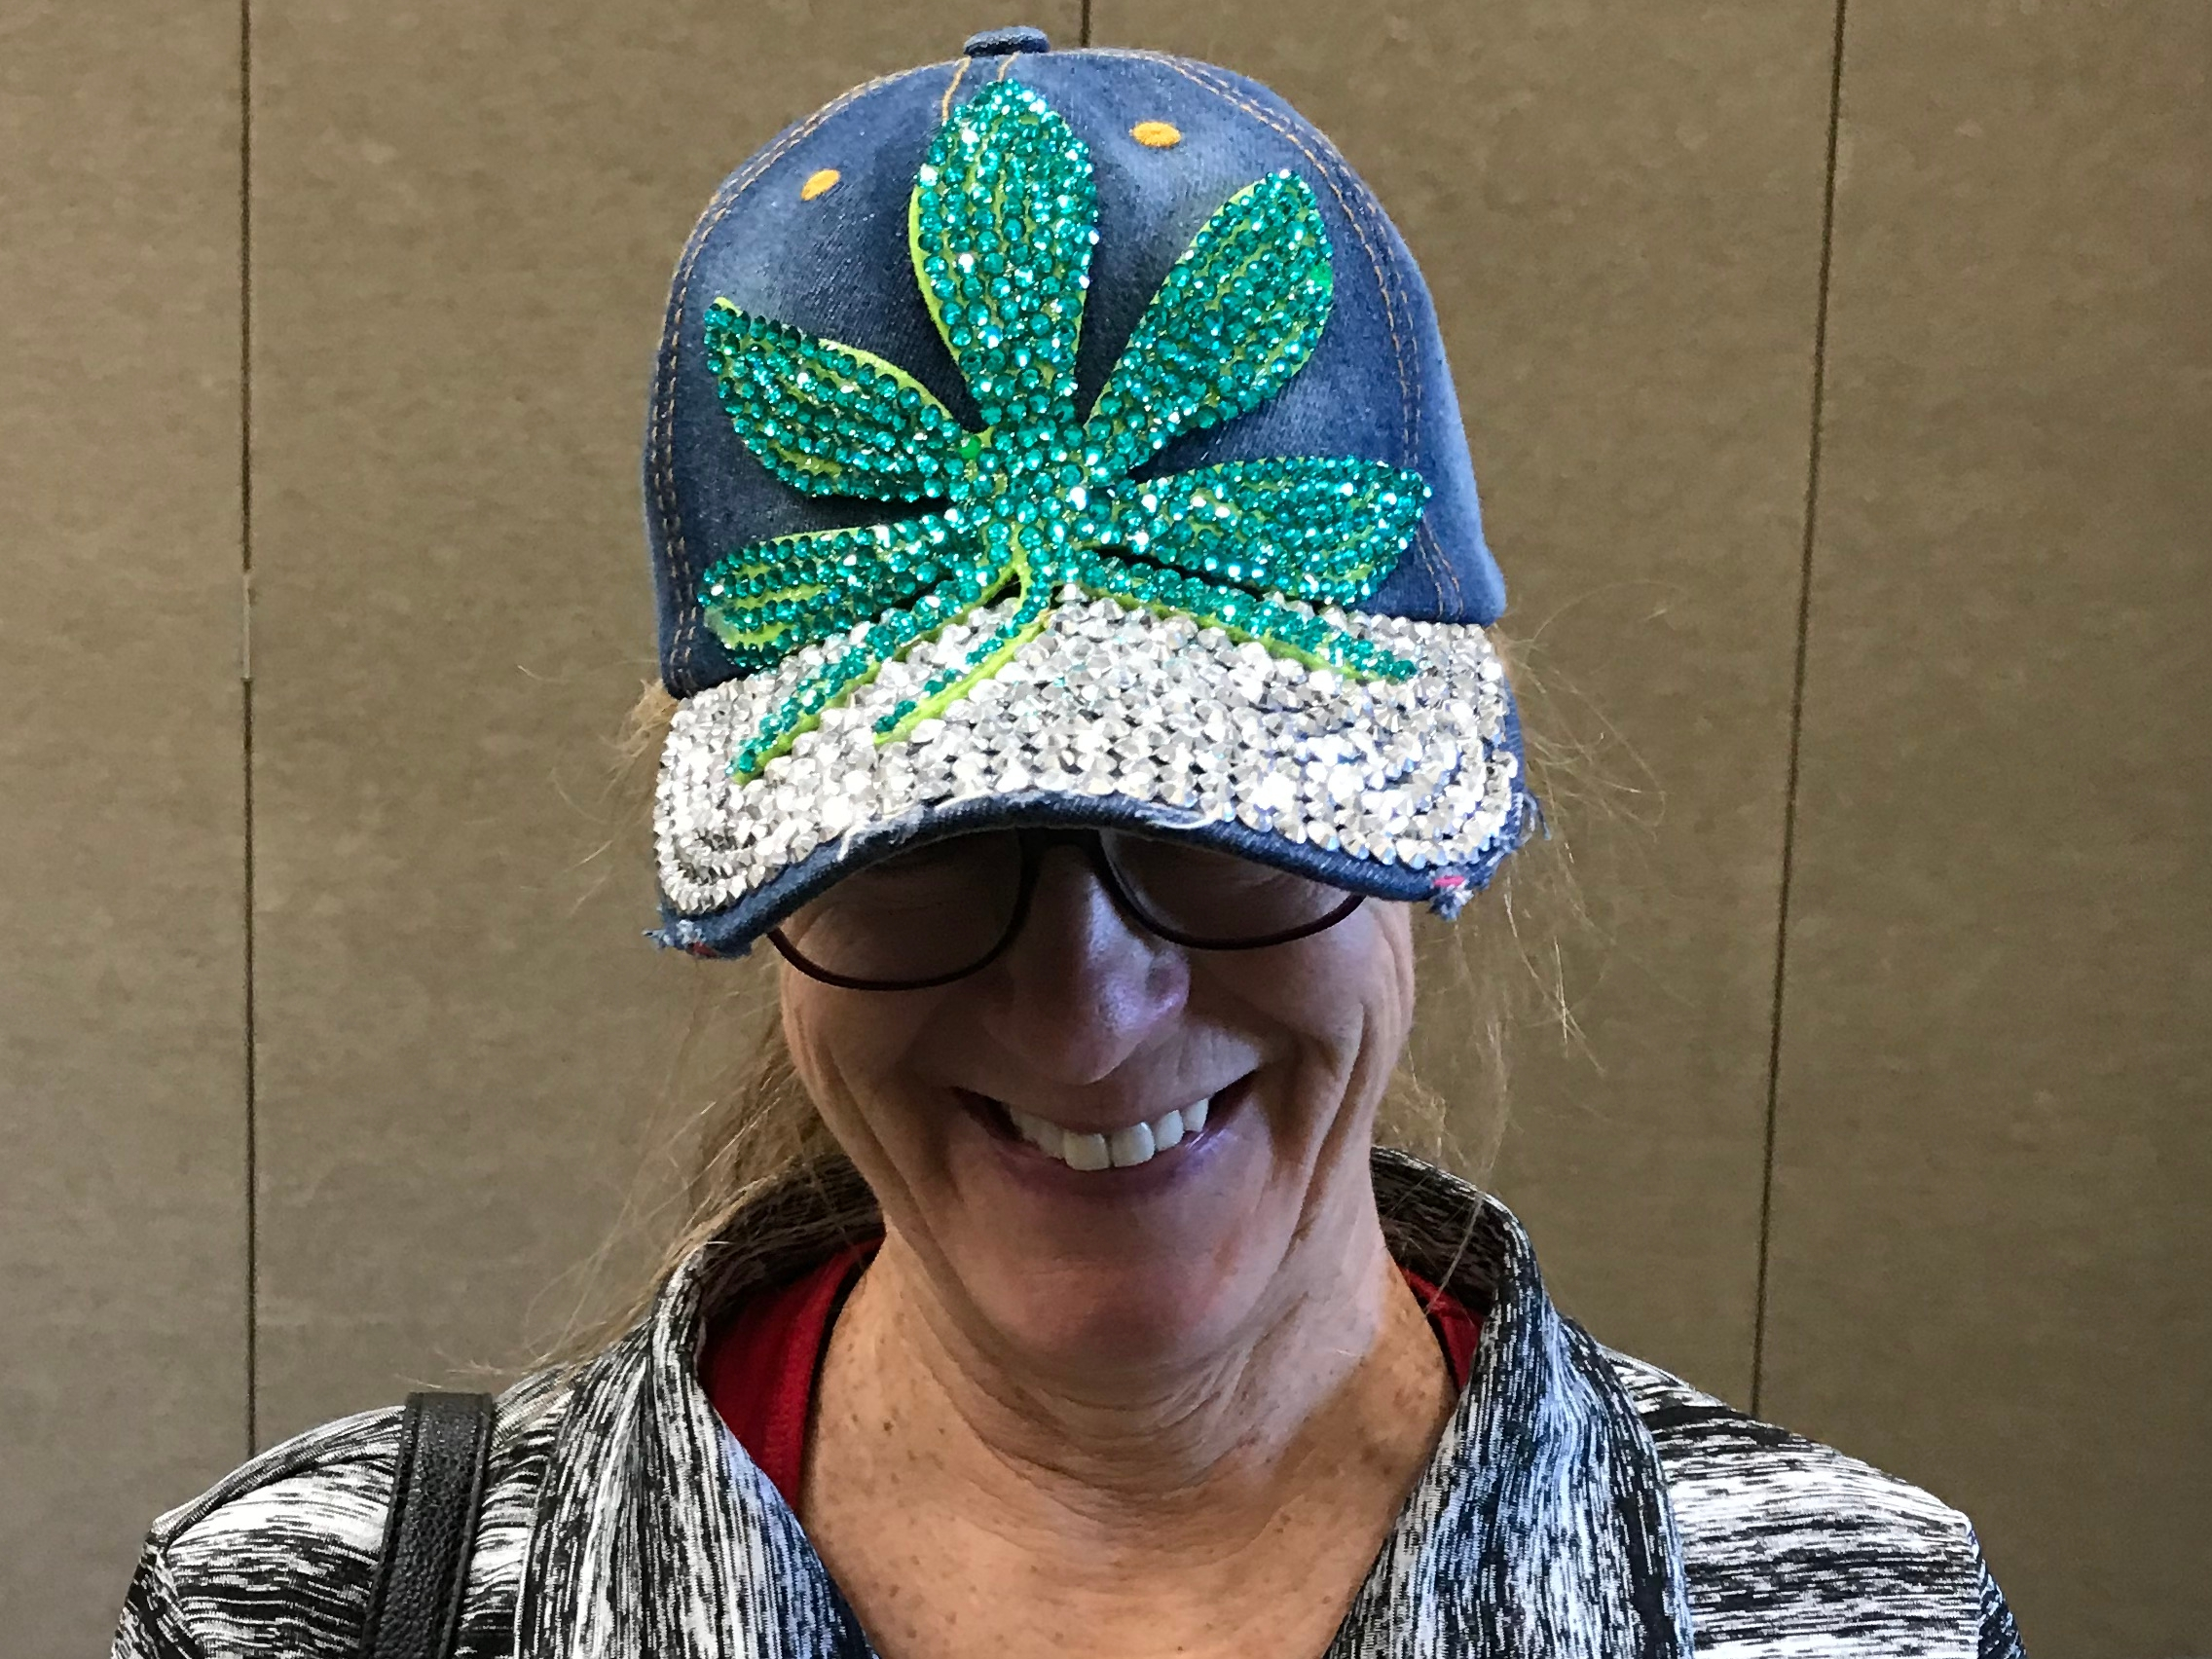 At Utah's first cannabis conference, vendors and attendees are wary of state-backed medical marijuana compromise